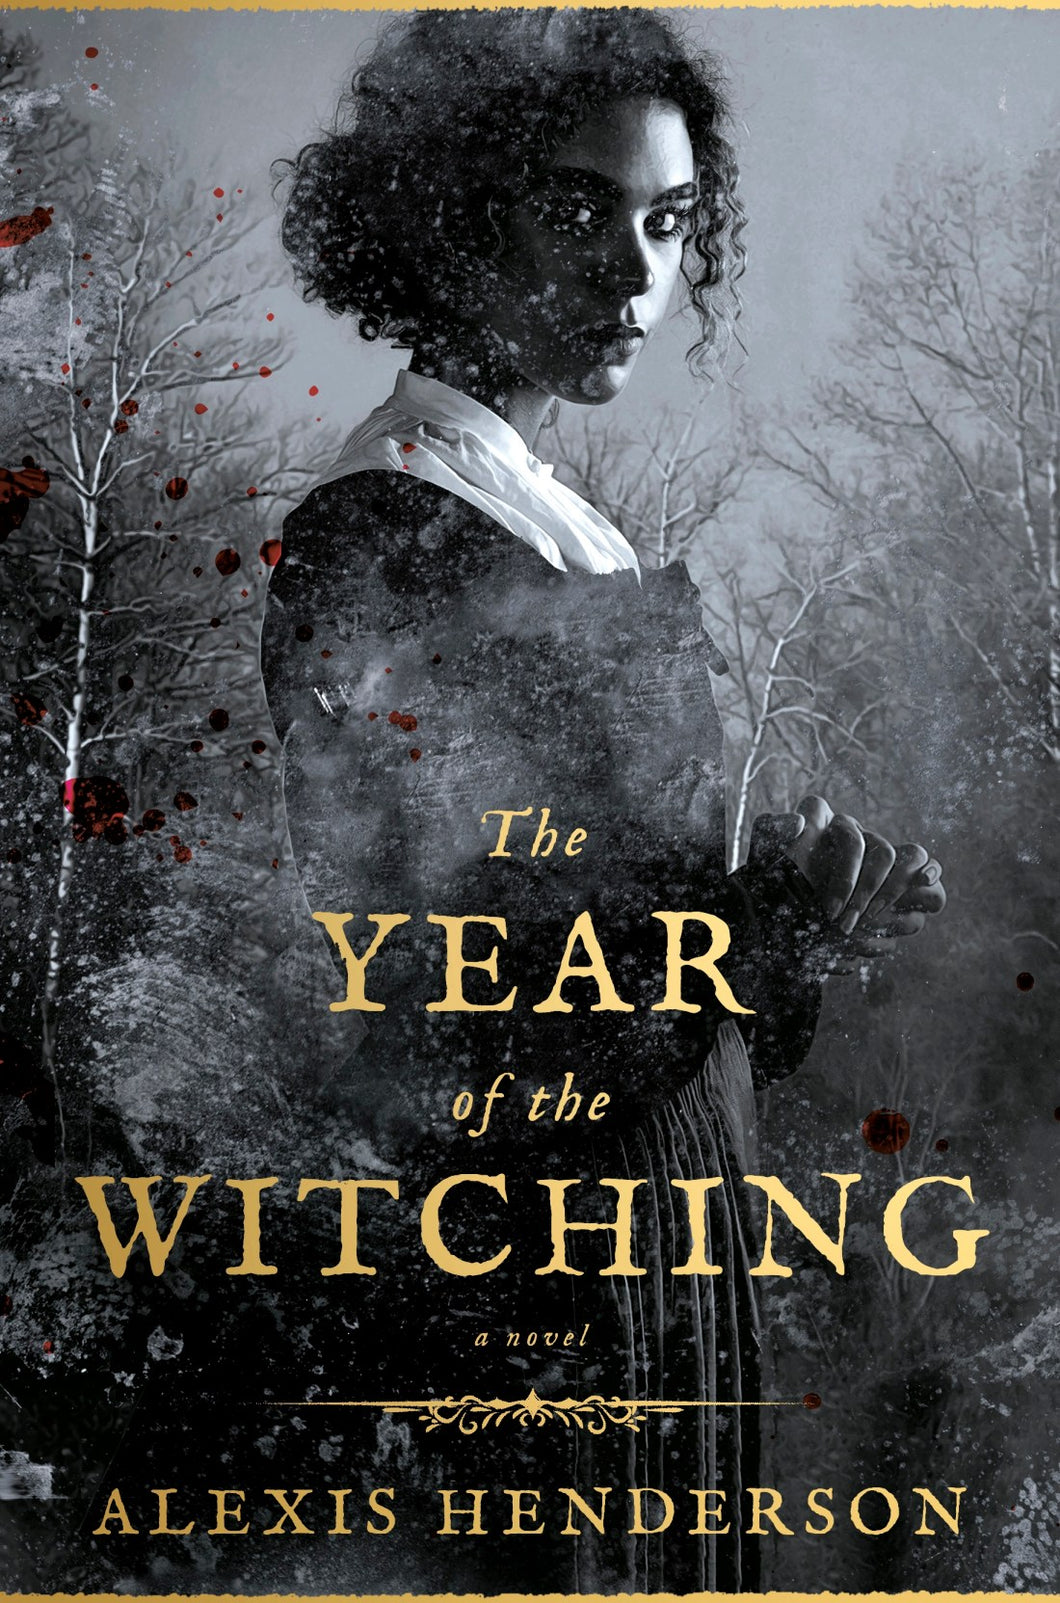 The Year of Witching - Alexis Henderson